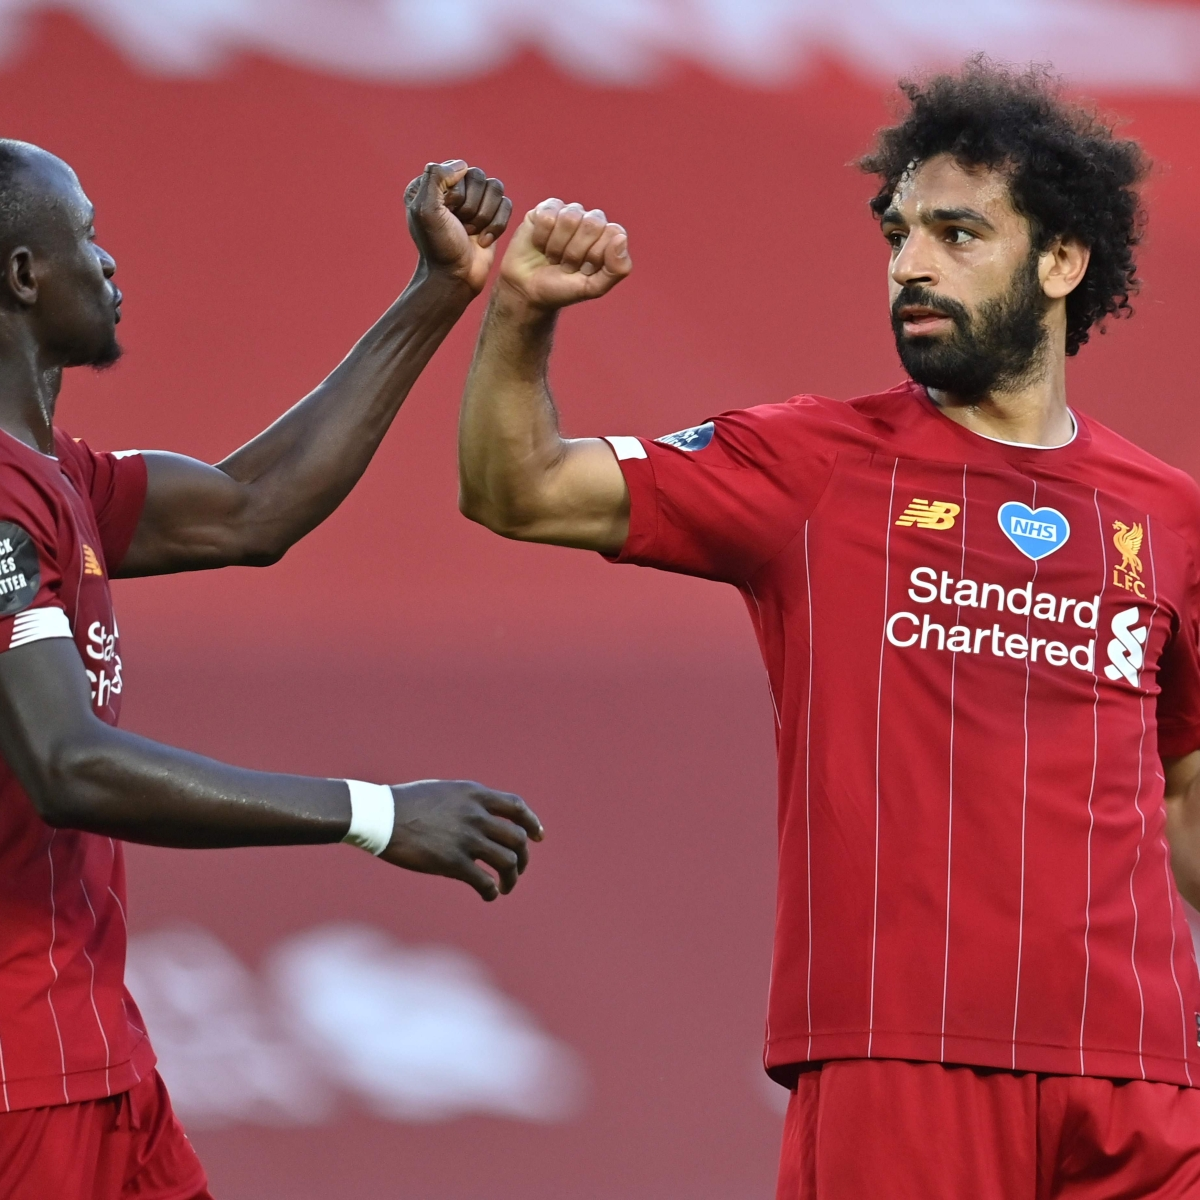 From Mohamed Salah to Virgil van Dijk: Full list of goals scored by every Liverpool player in their title winning season